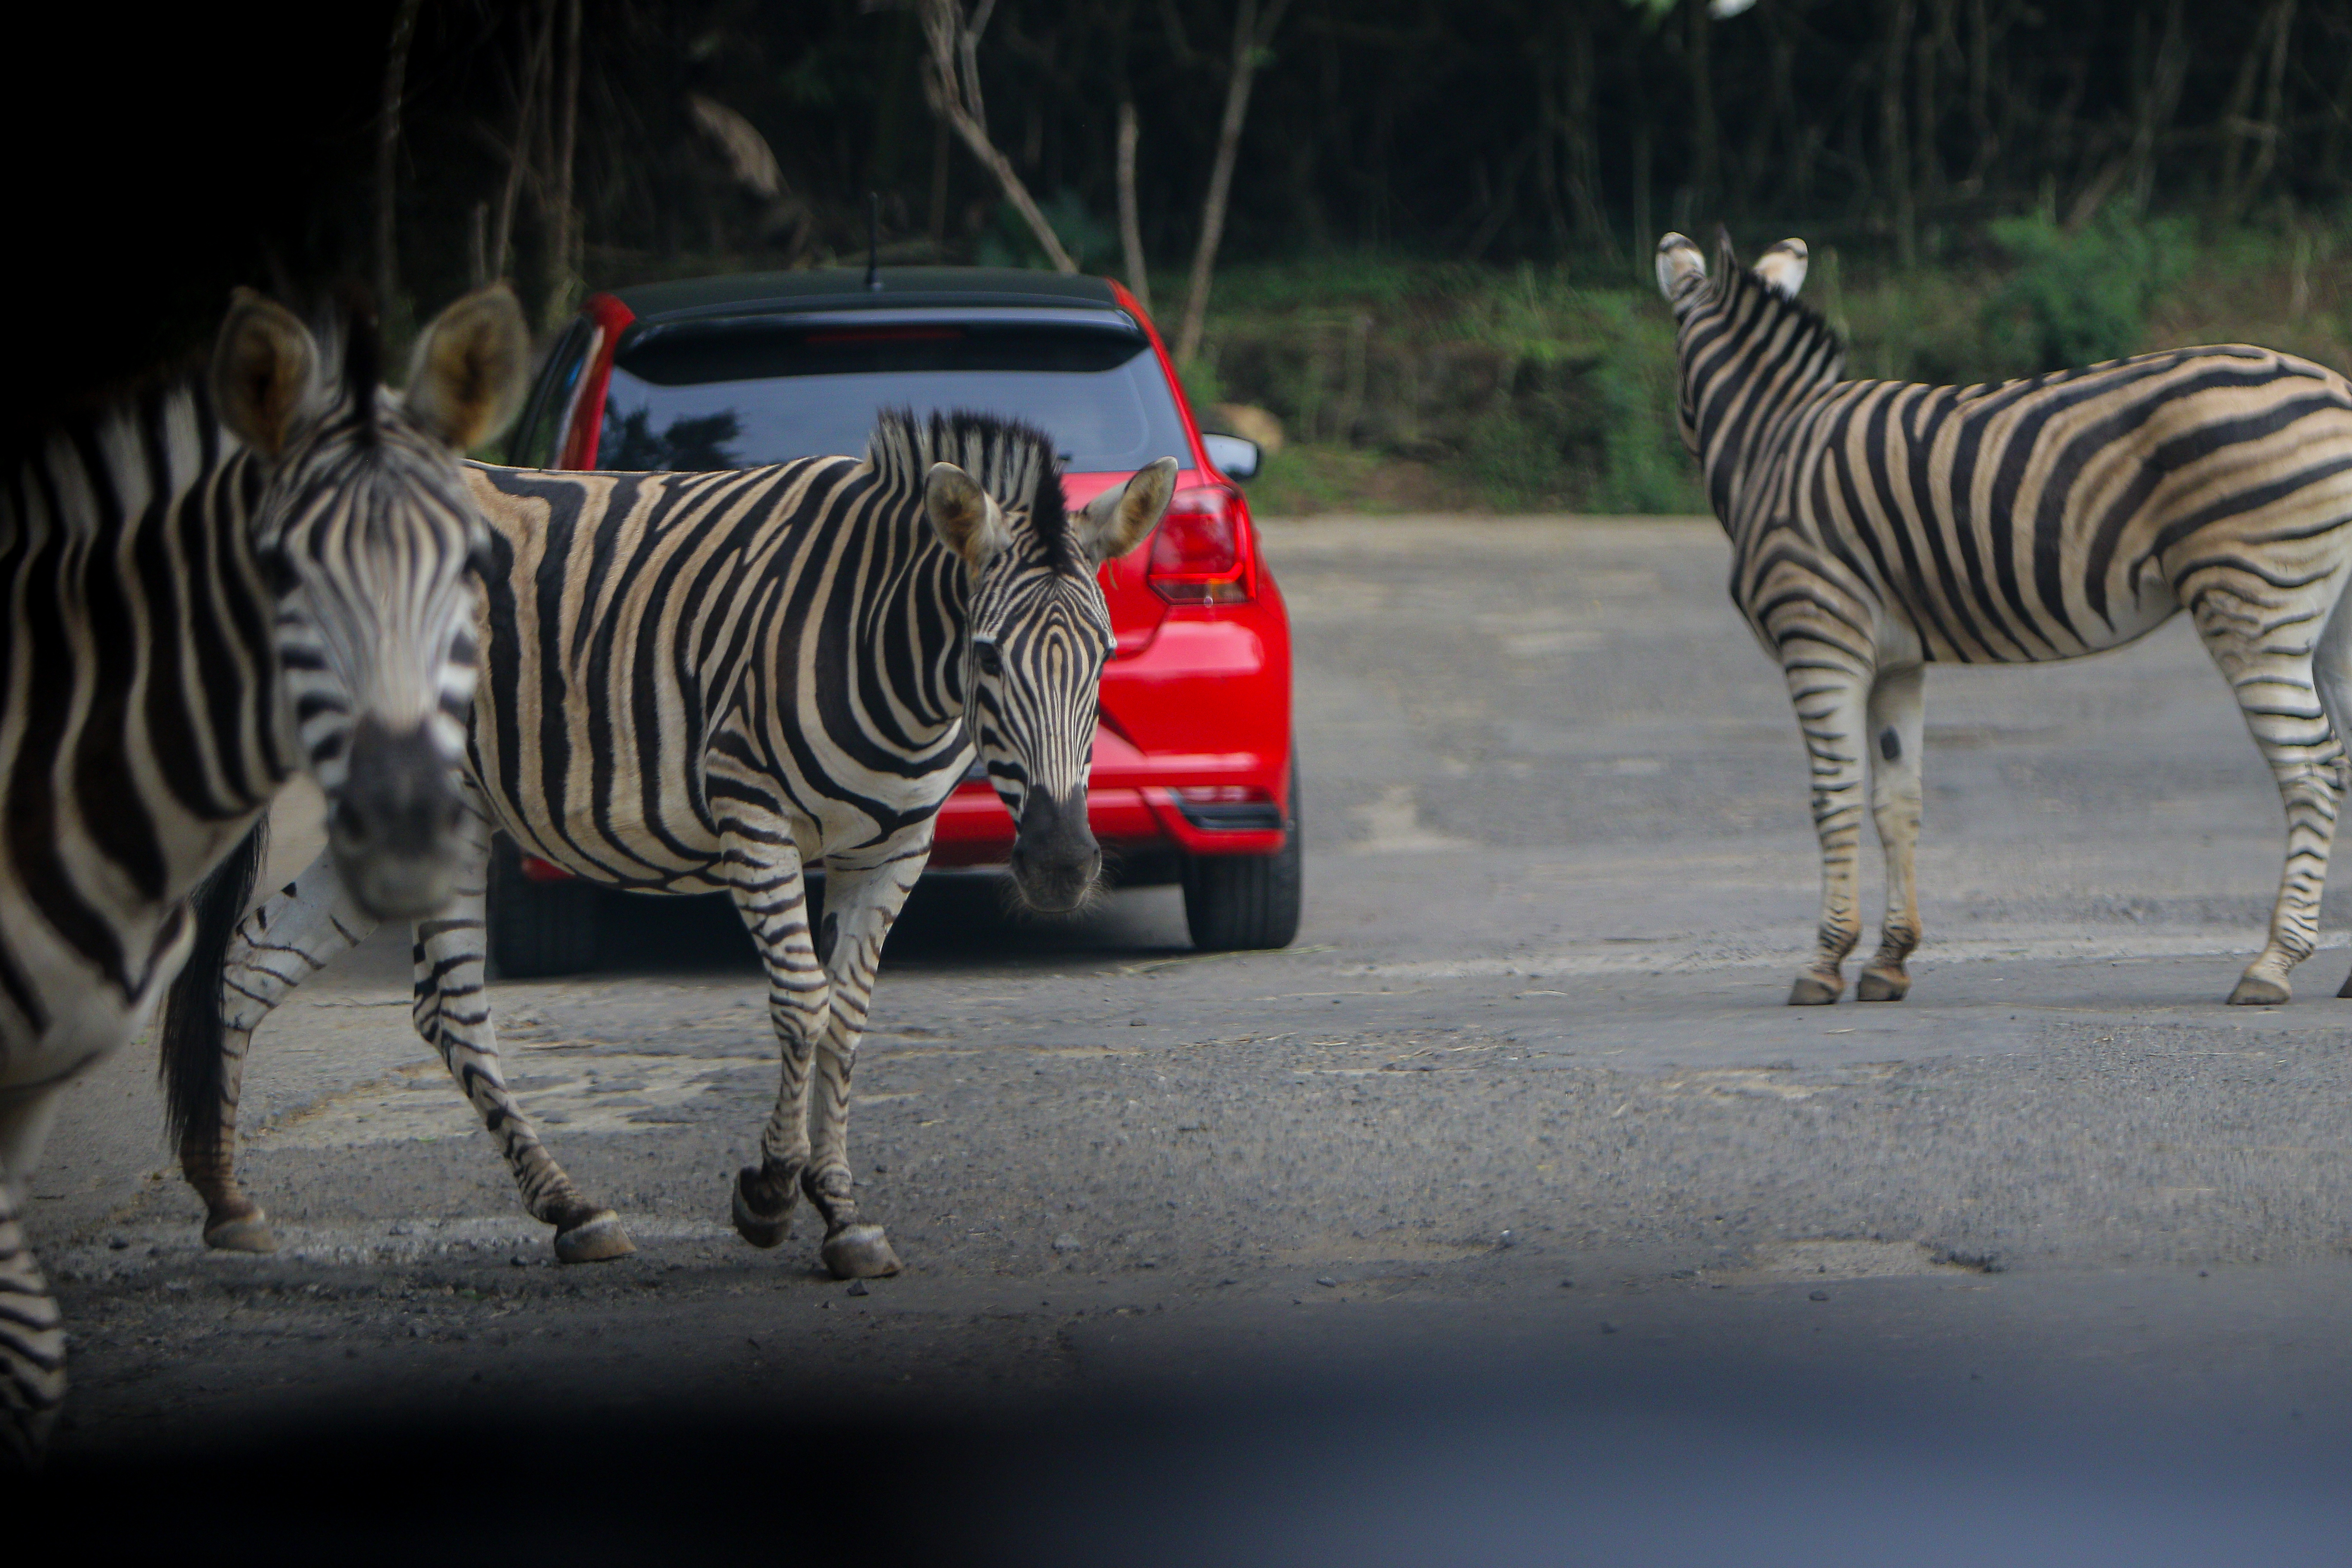 An Escaped Zebra in Maryland Died, But They Died Free